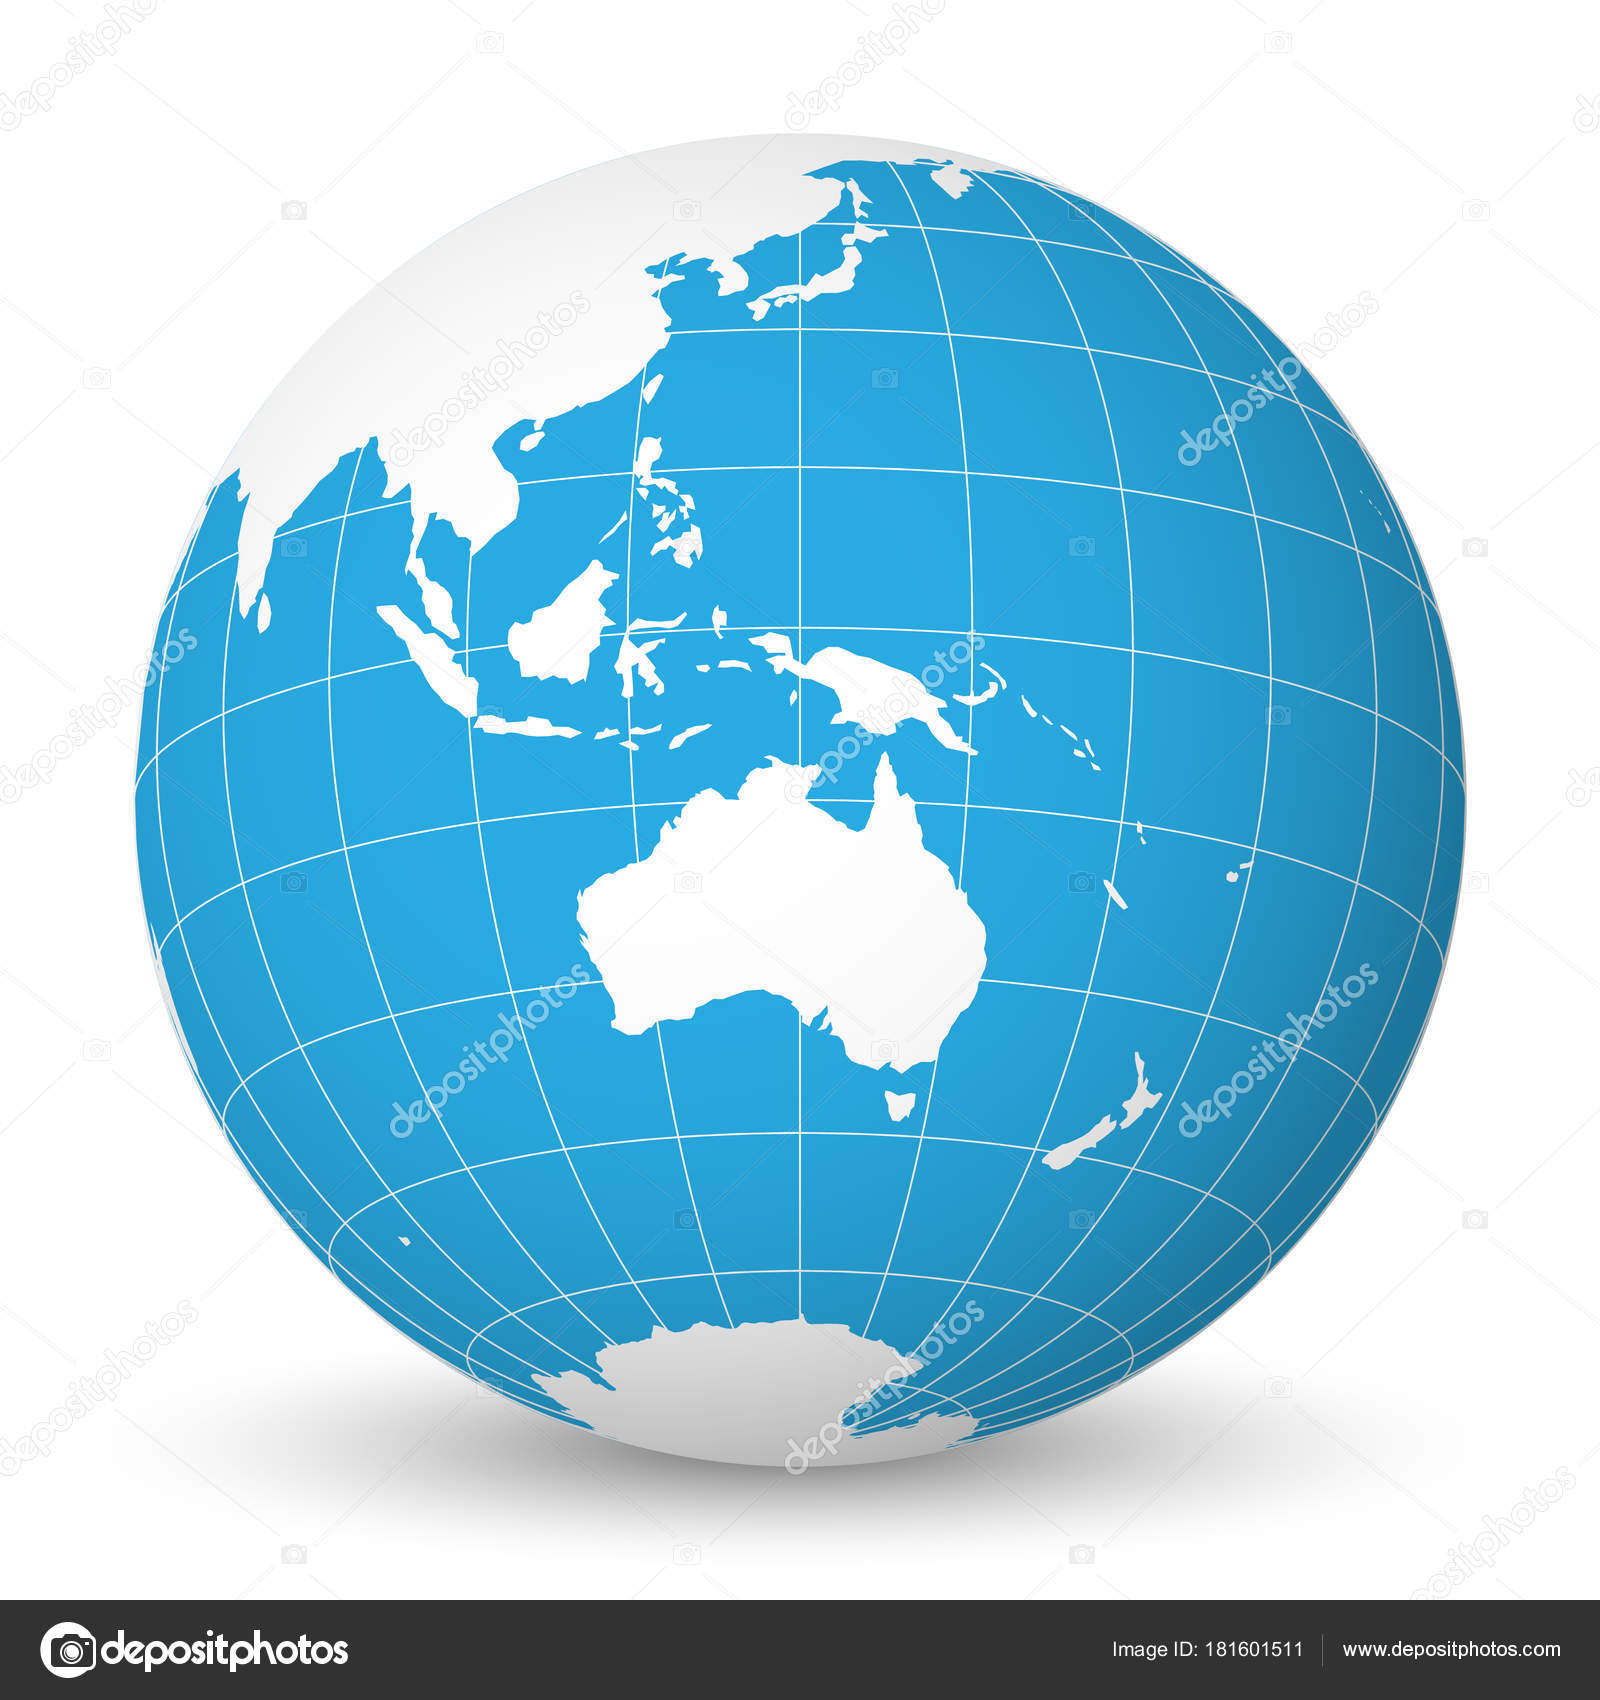 Earth globe with white world map and blue seas and oceans focused on earth globe with green world map and blue seas and oceans focused on australia with thin white meridians and parallels 3d vector illustration gumiabroncs Image collections